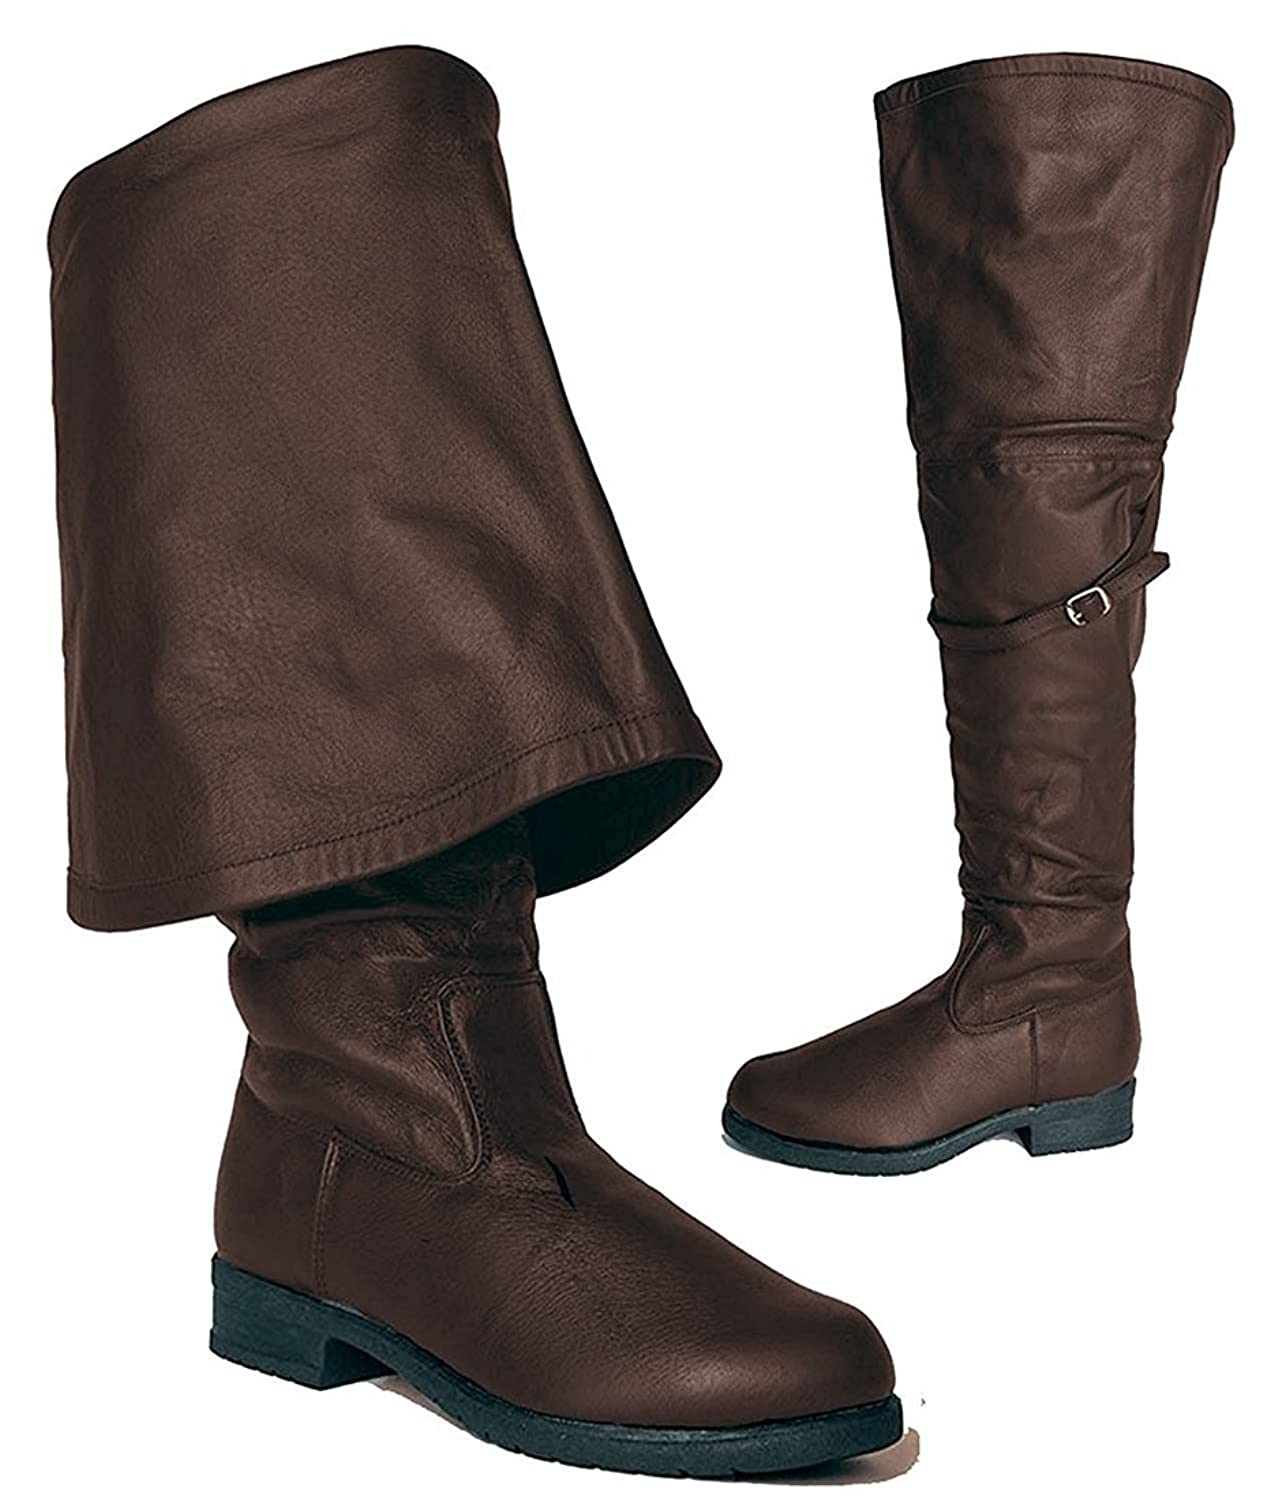 Mens Knee High Pirate Boots Brown Halloween Accessory